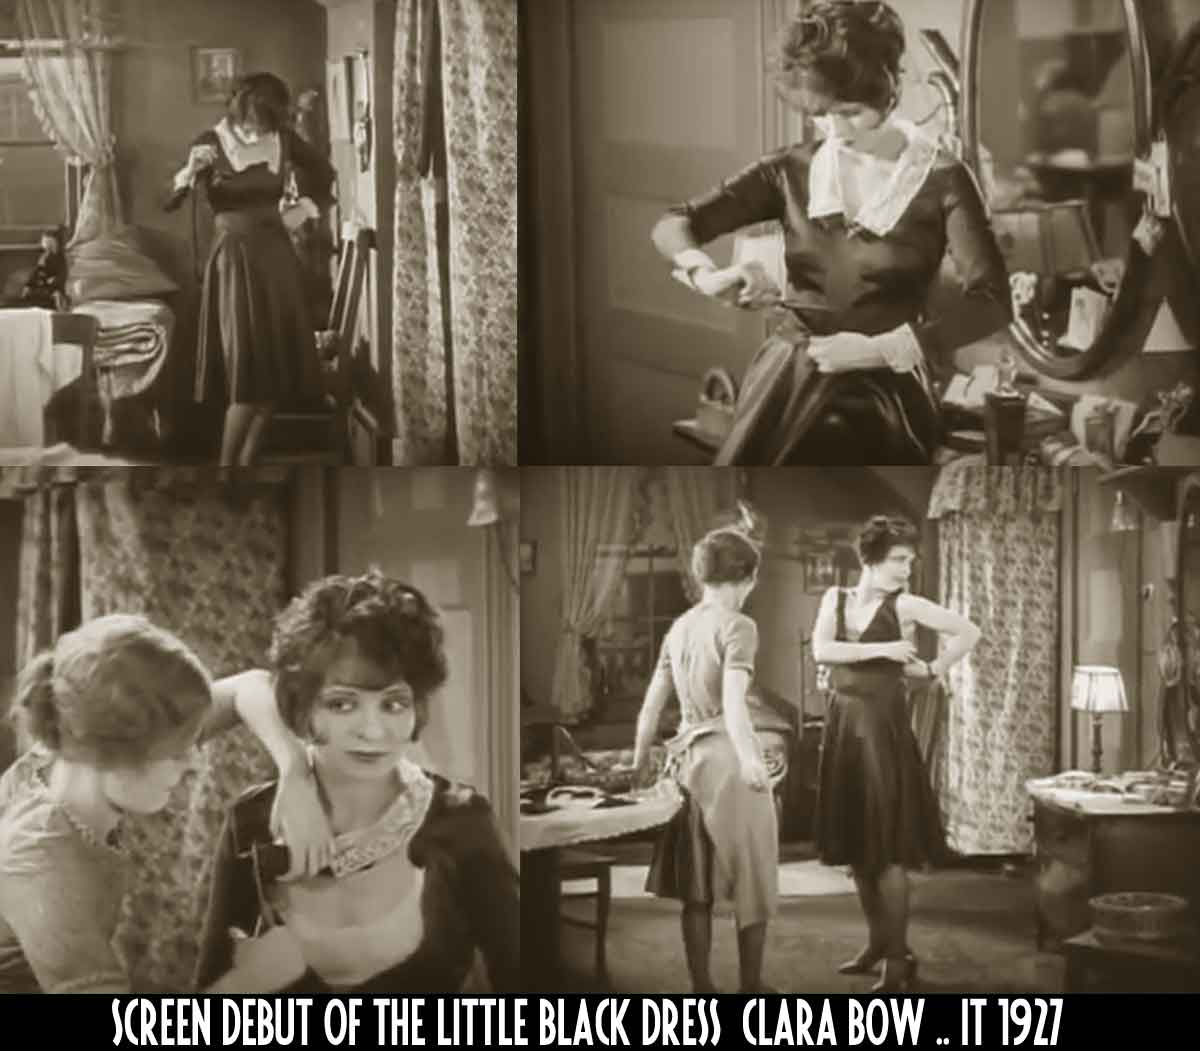 The-Screen-Debut-of-the-Little-Black-Dress-1927-2